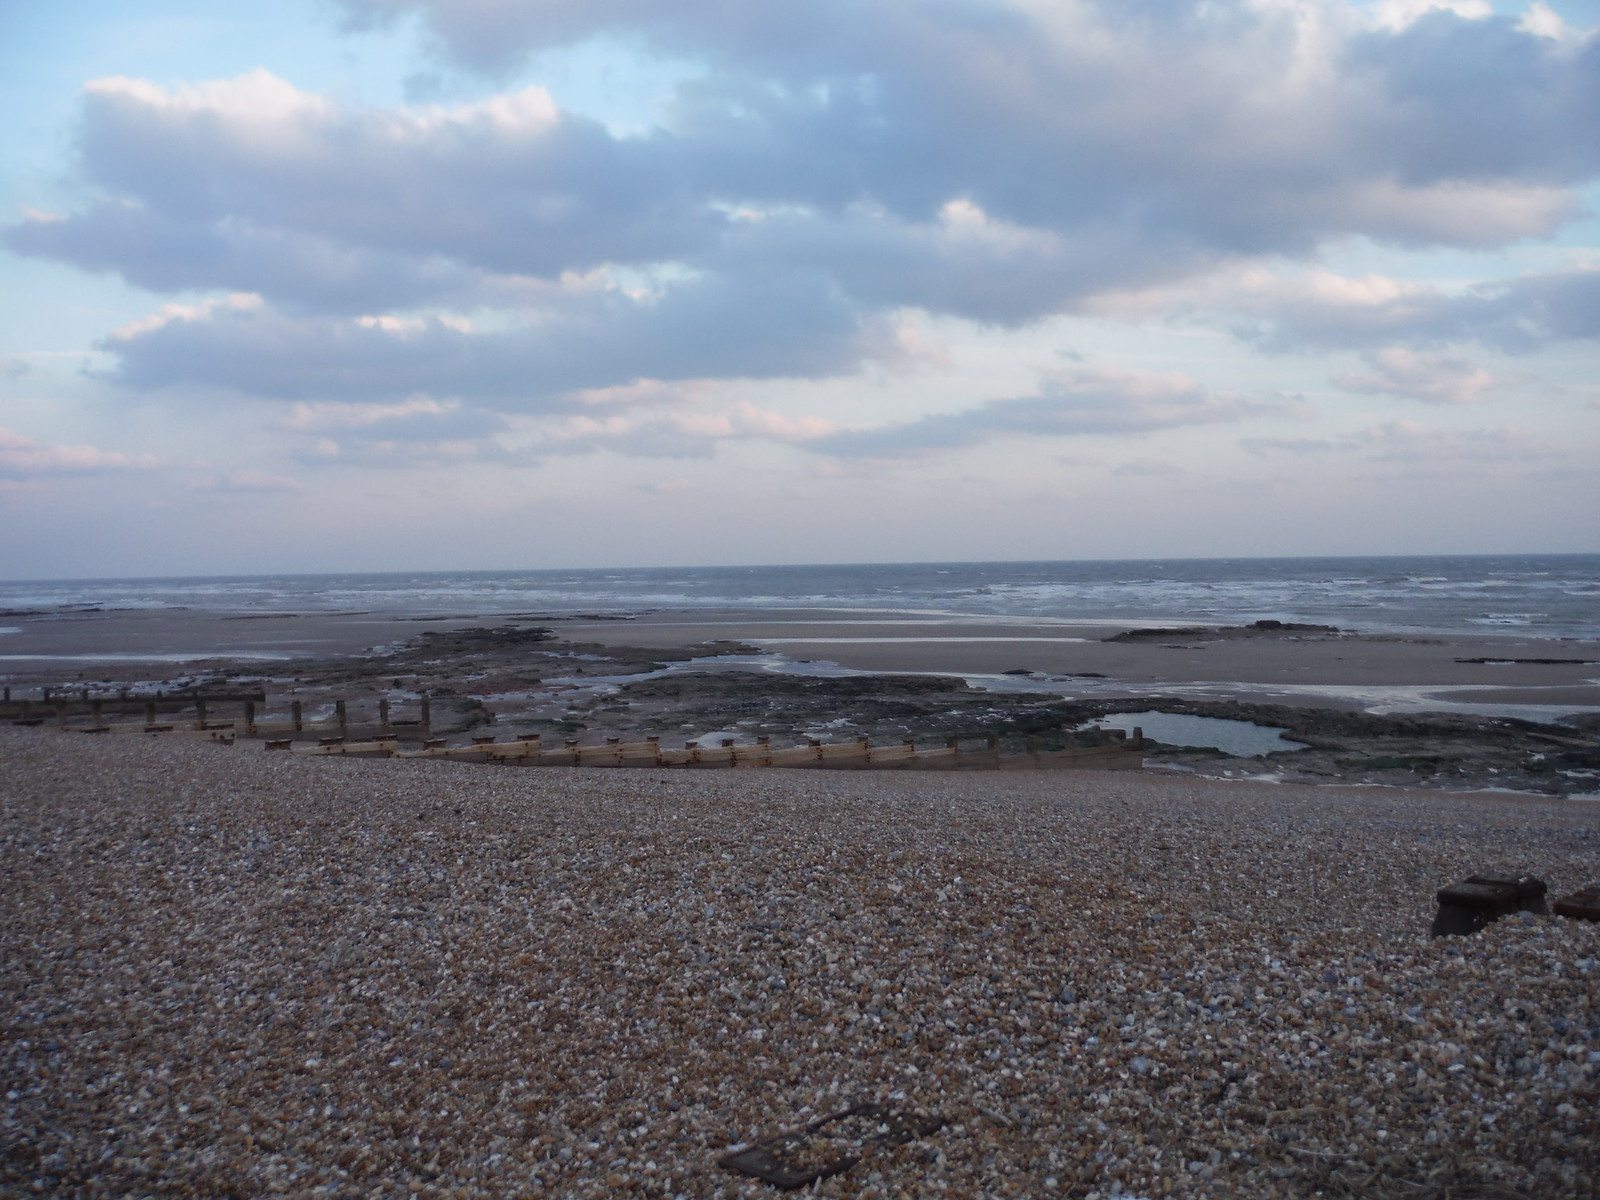 Beach by Galley Hill SWC Walk 66 - Eastbourne to Hastings via Bexhill